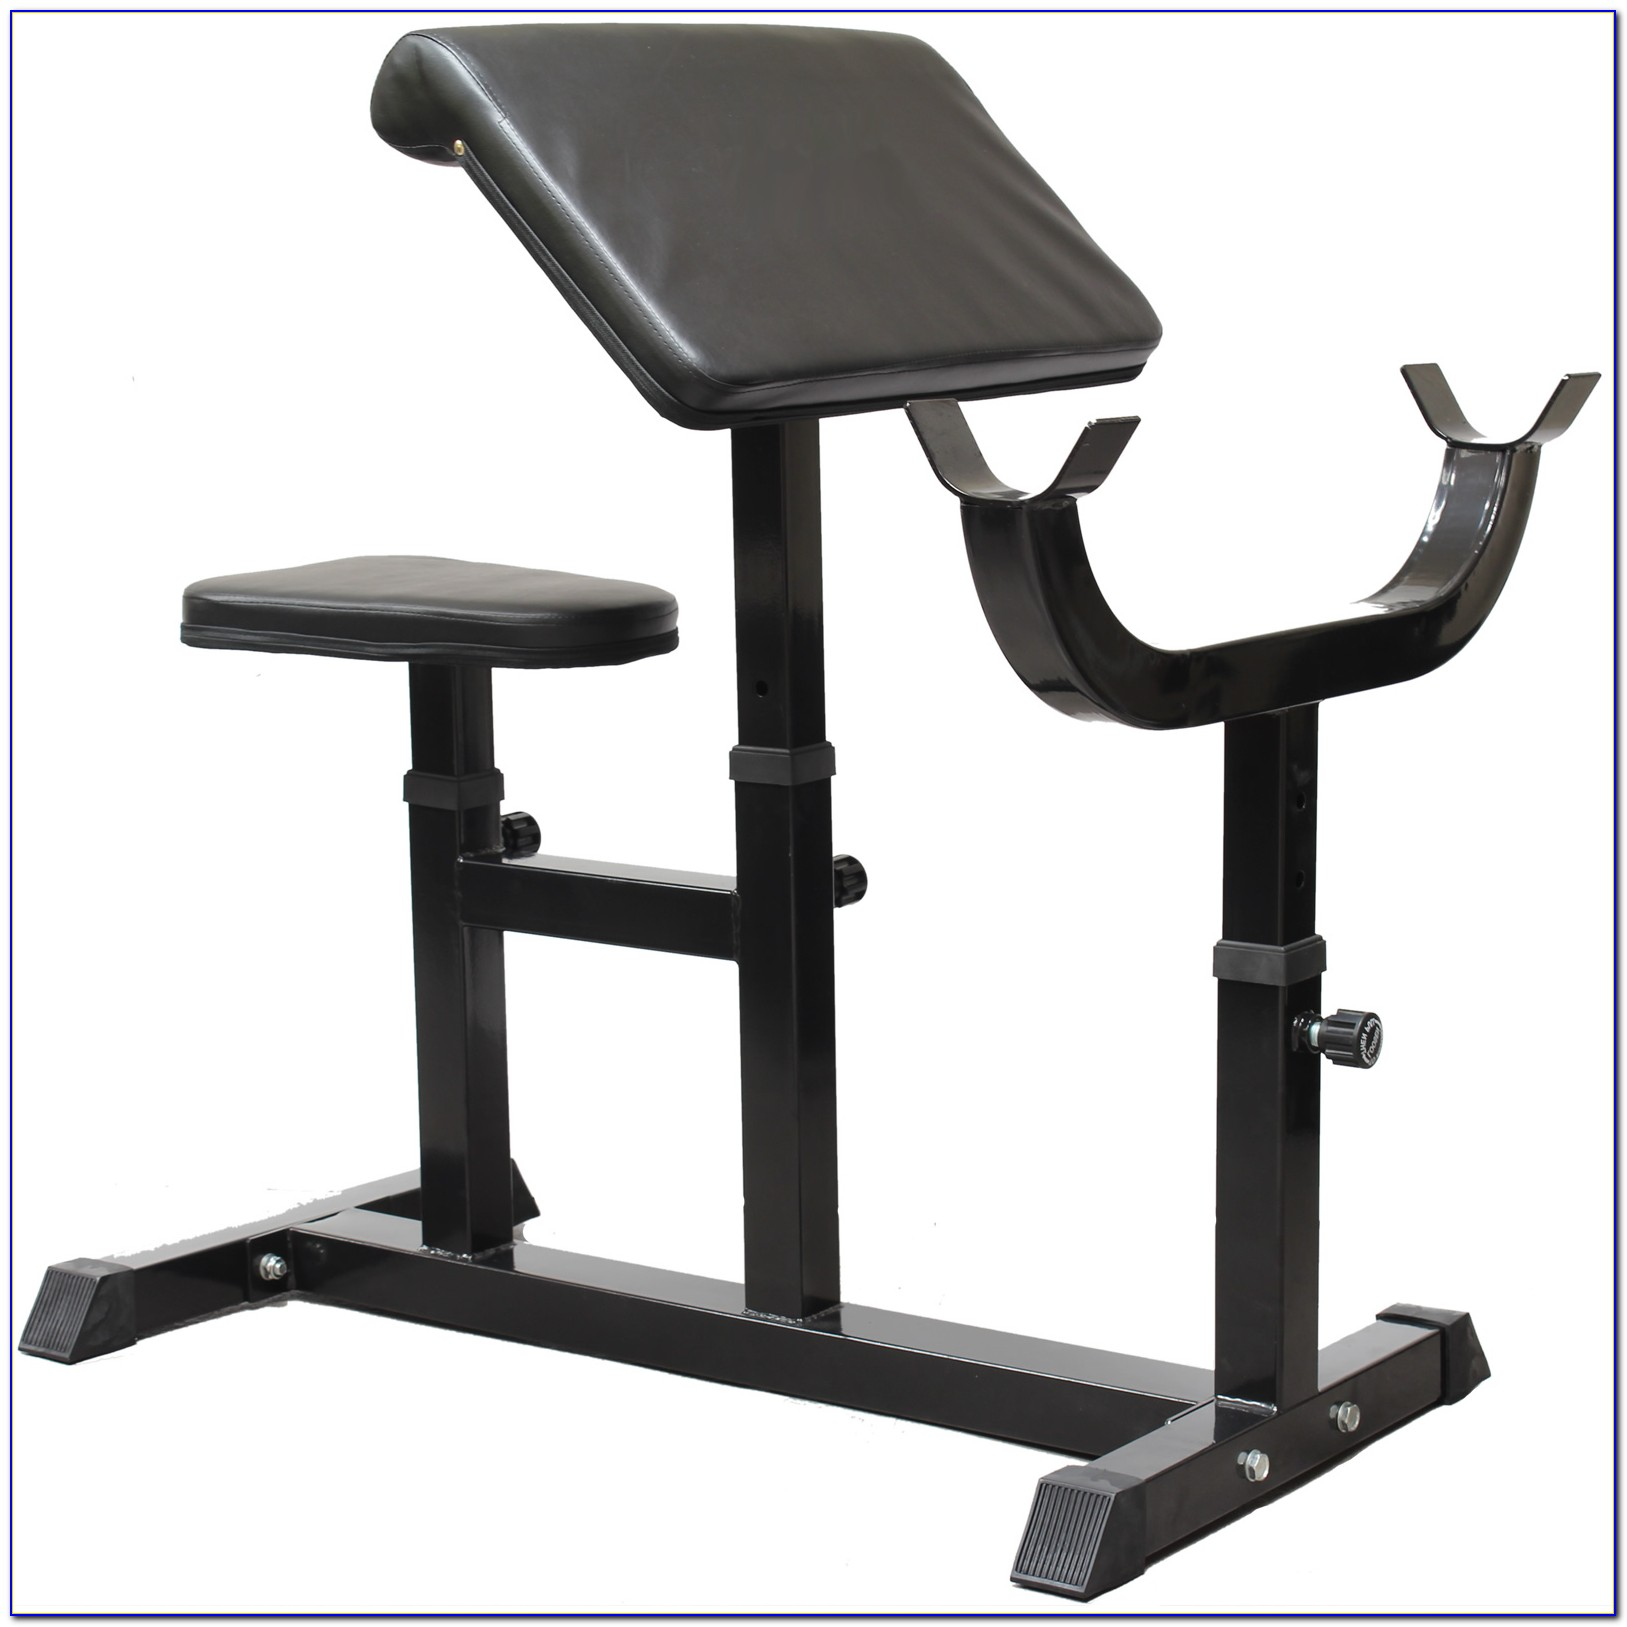 Weight Bench With Preacher Curl